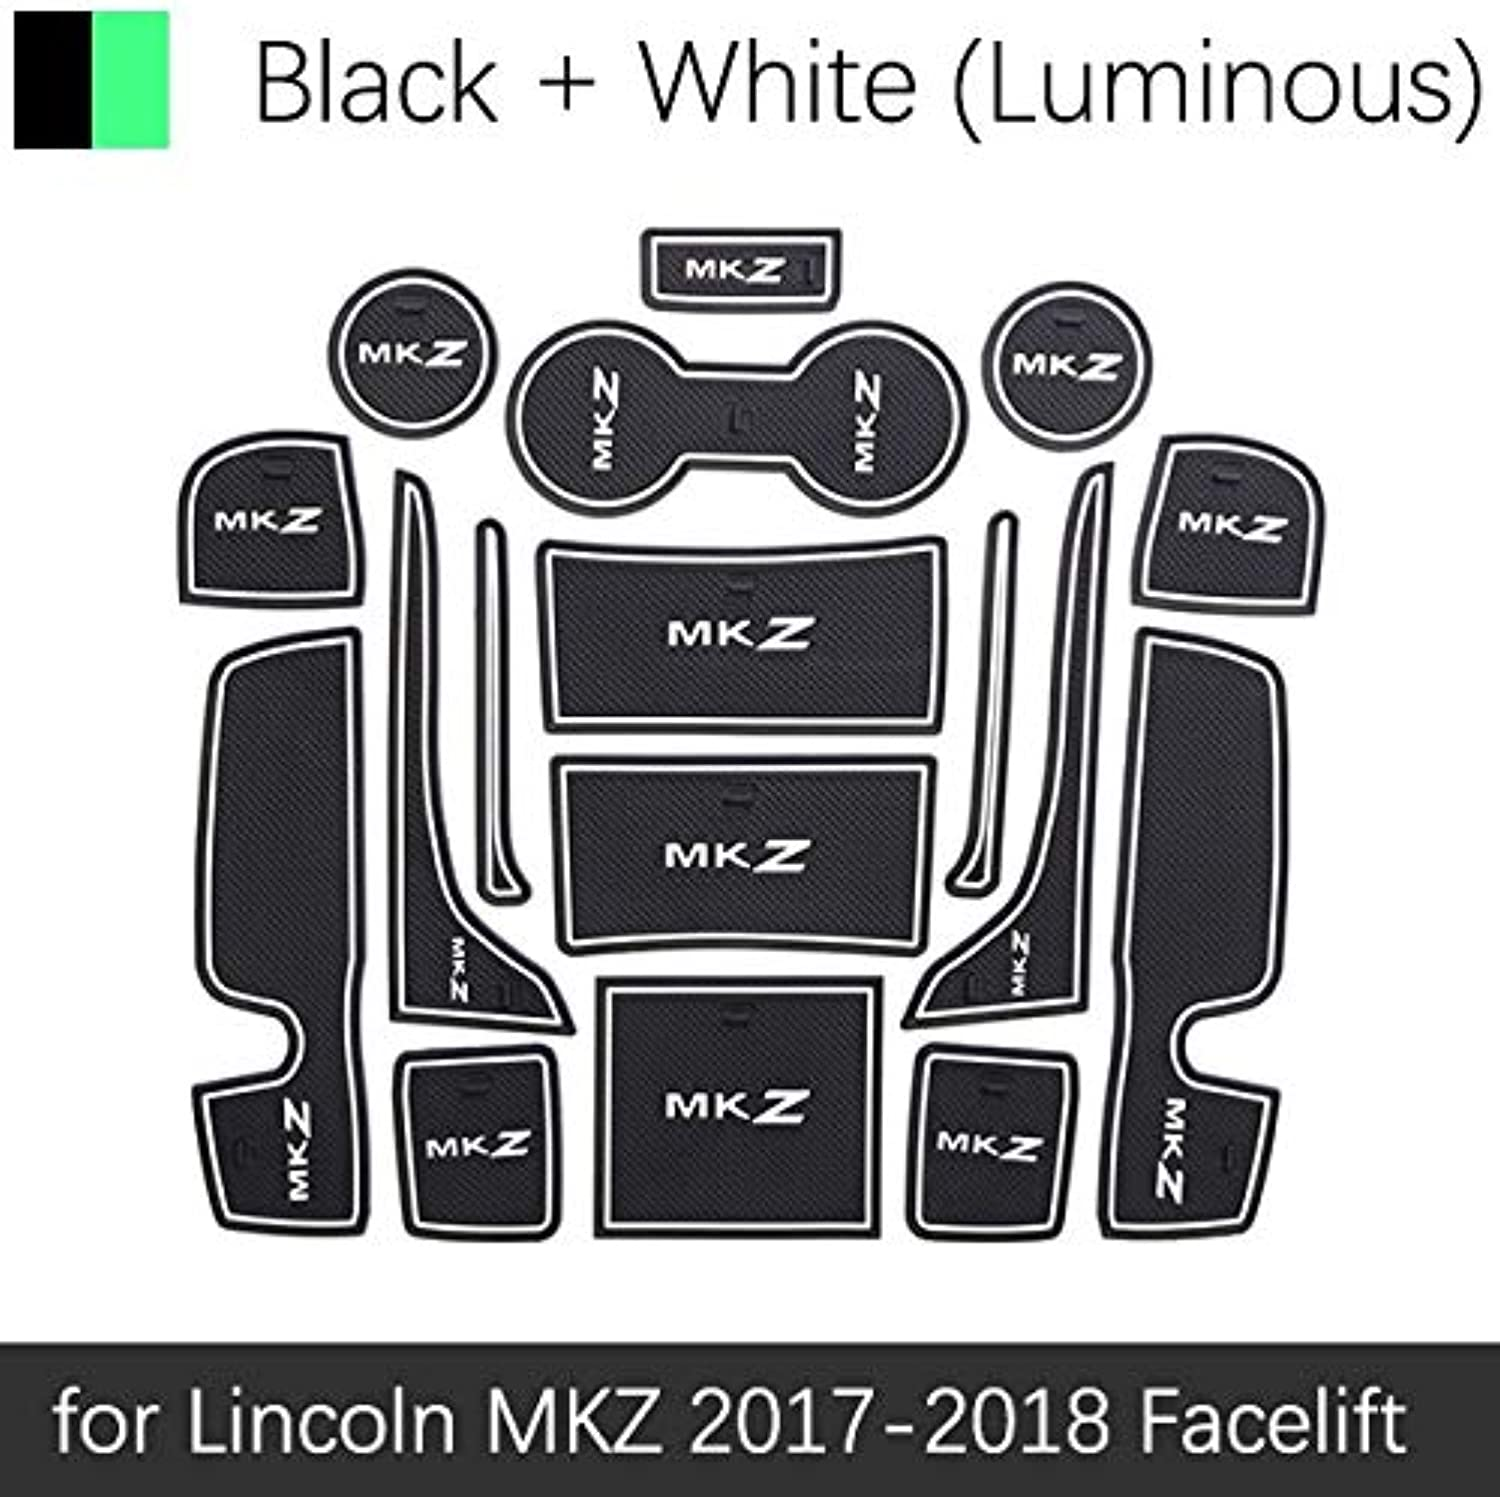 AntiSlip Rubber Mats Gate Slot Cup Mat for Lincoln MKZ 2017 2018 2019 Facelift 17pcs Set Accessories Car Stickers Car Styling  (color Name  White Luminous)